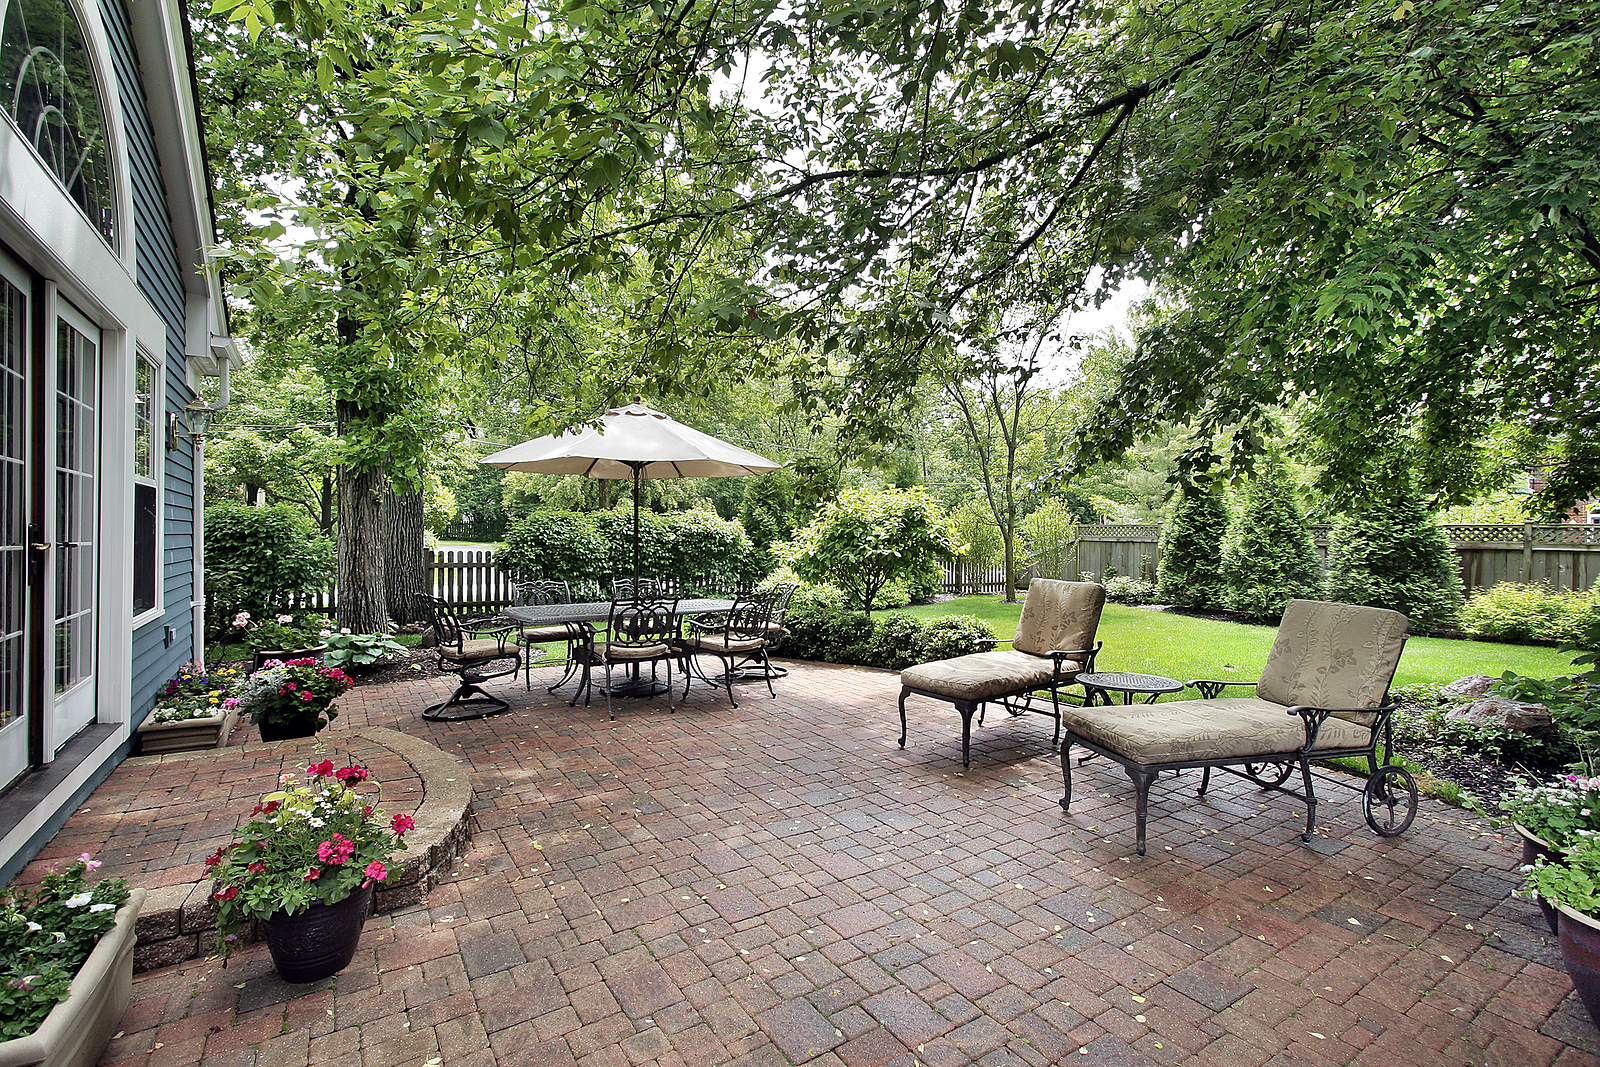 8 Summer Projects for the Ultimate Backyard | Dallas Fort ... on Backyard Masonry Ideas id=90876